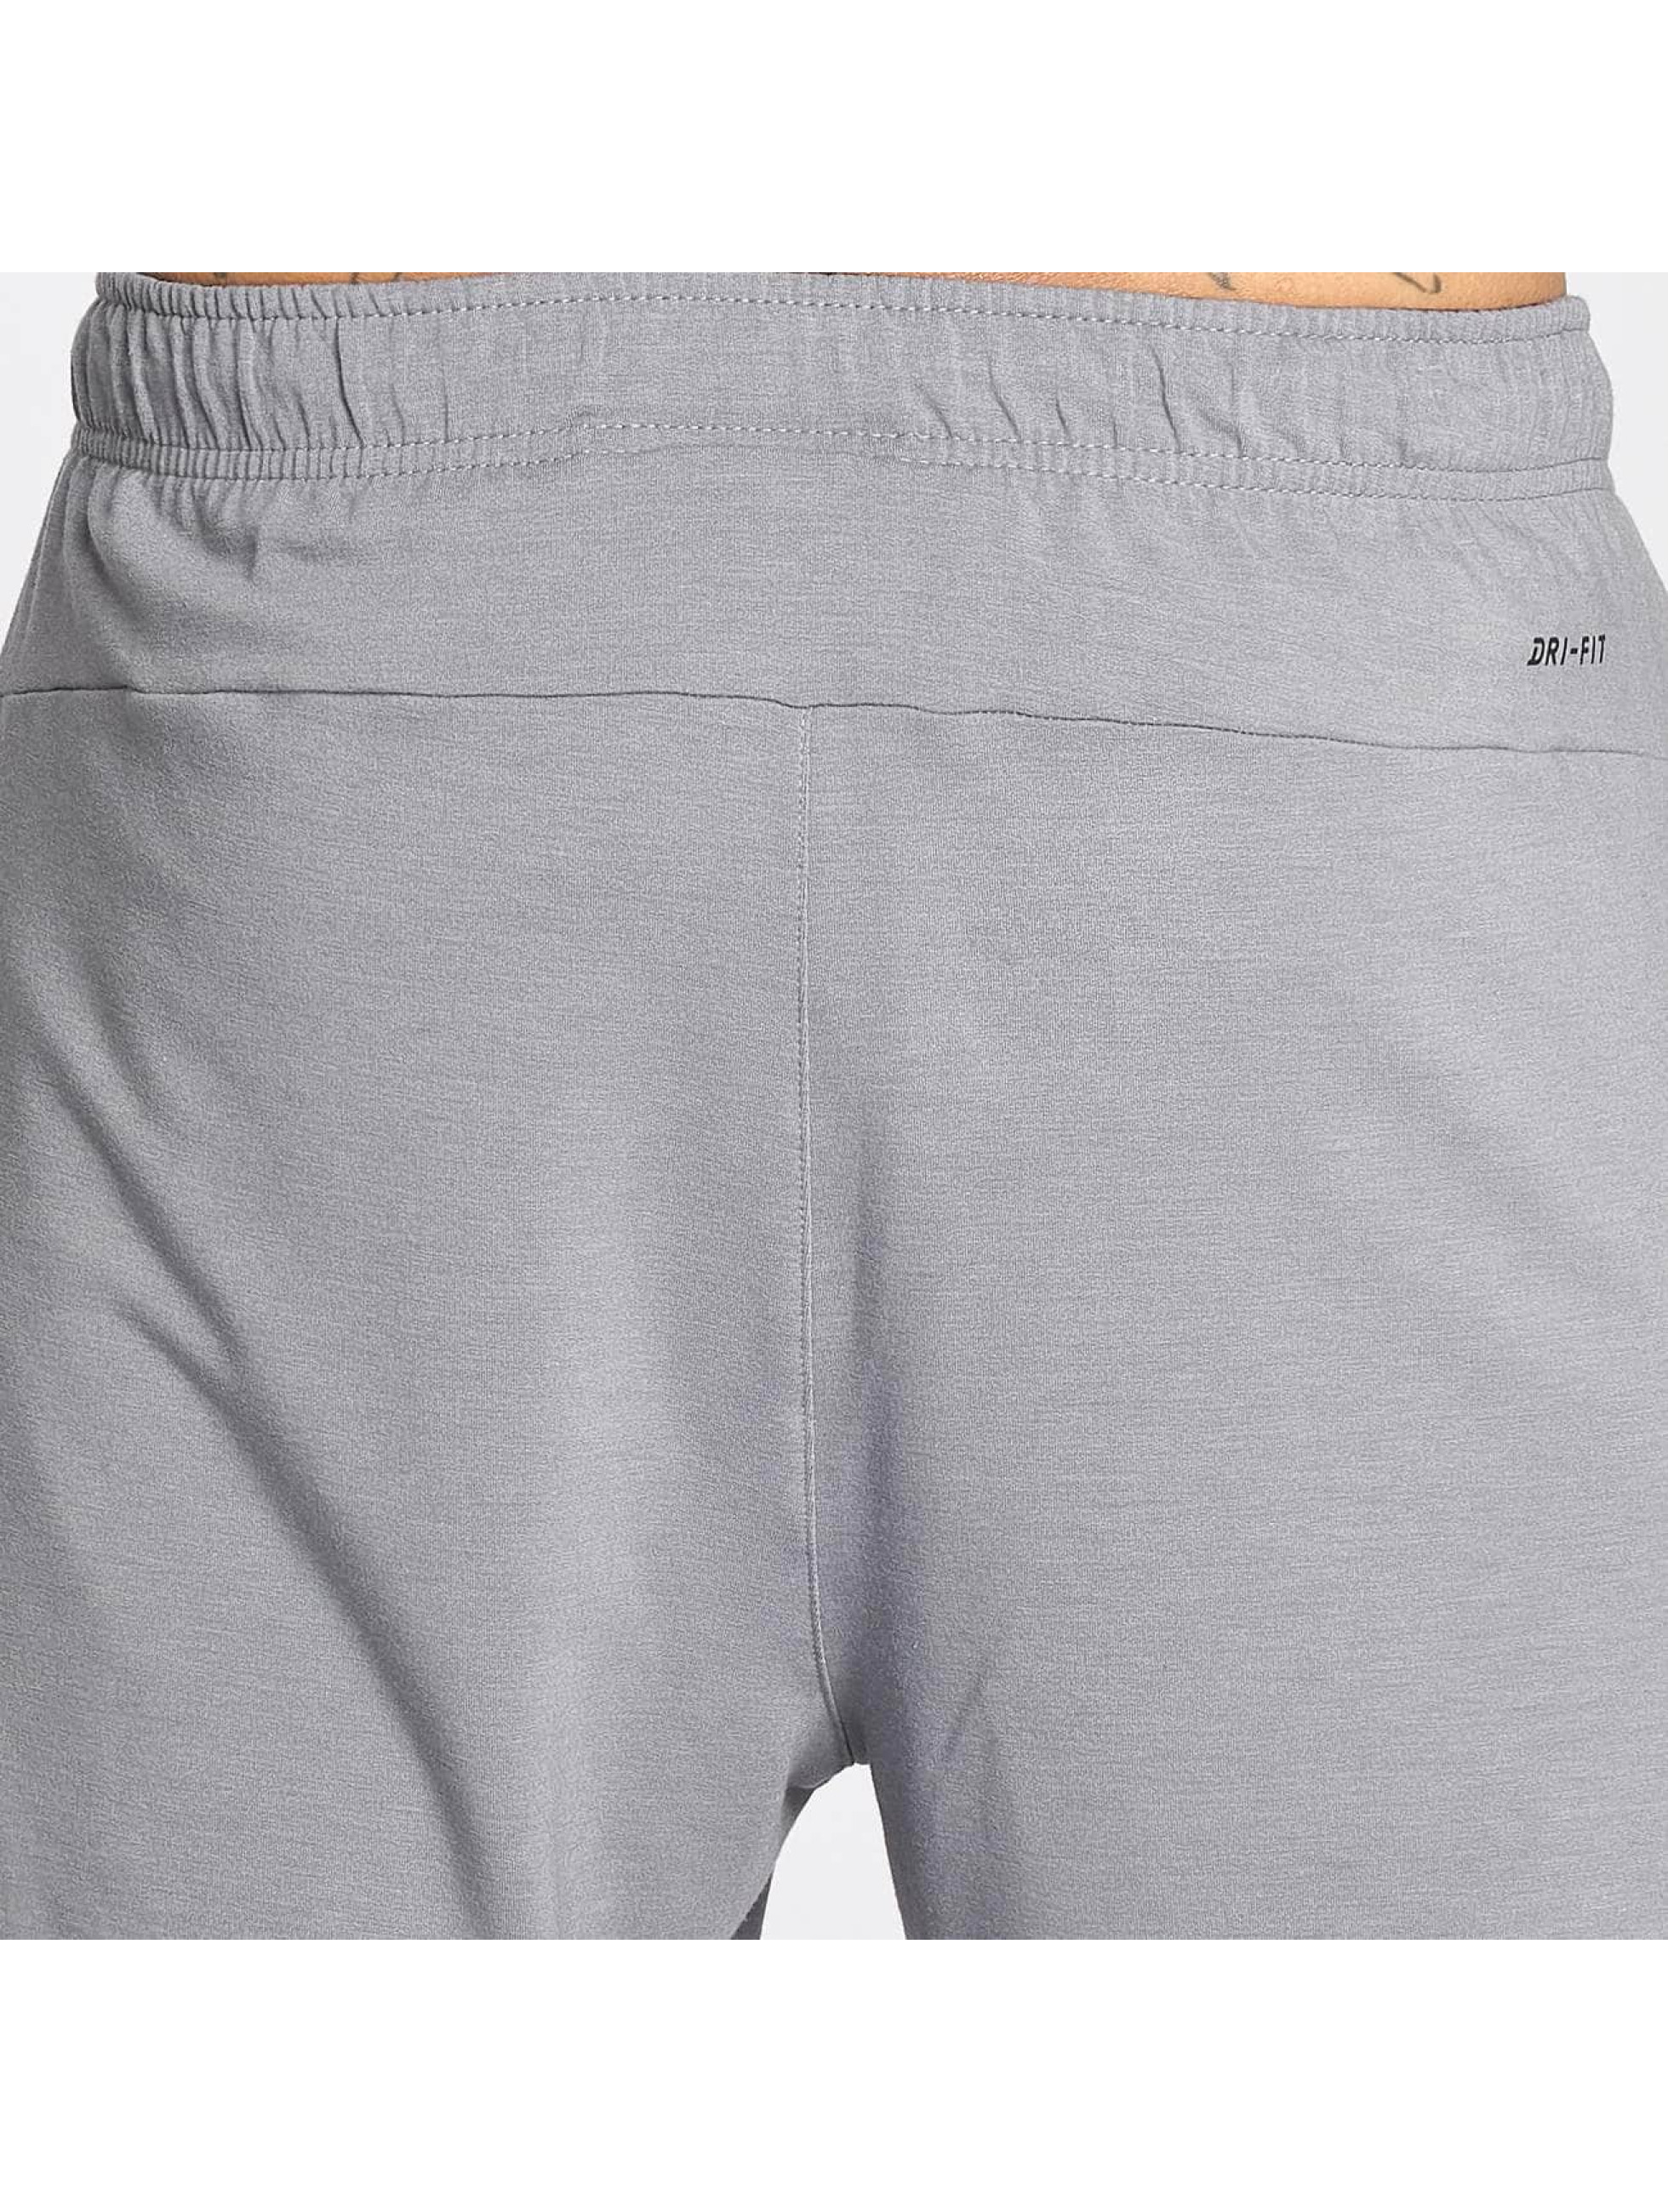 Nike Performance Short Dry Training gris